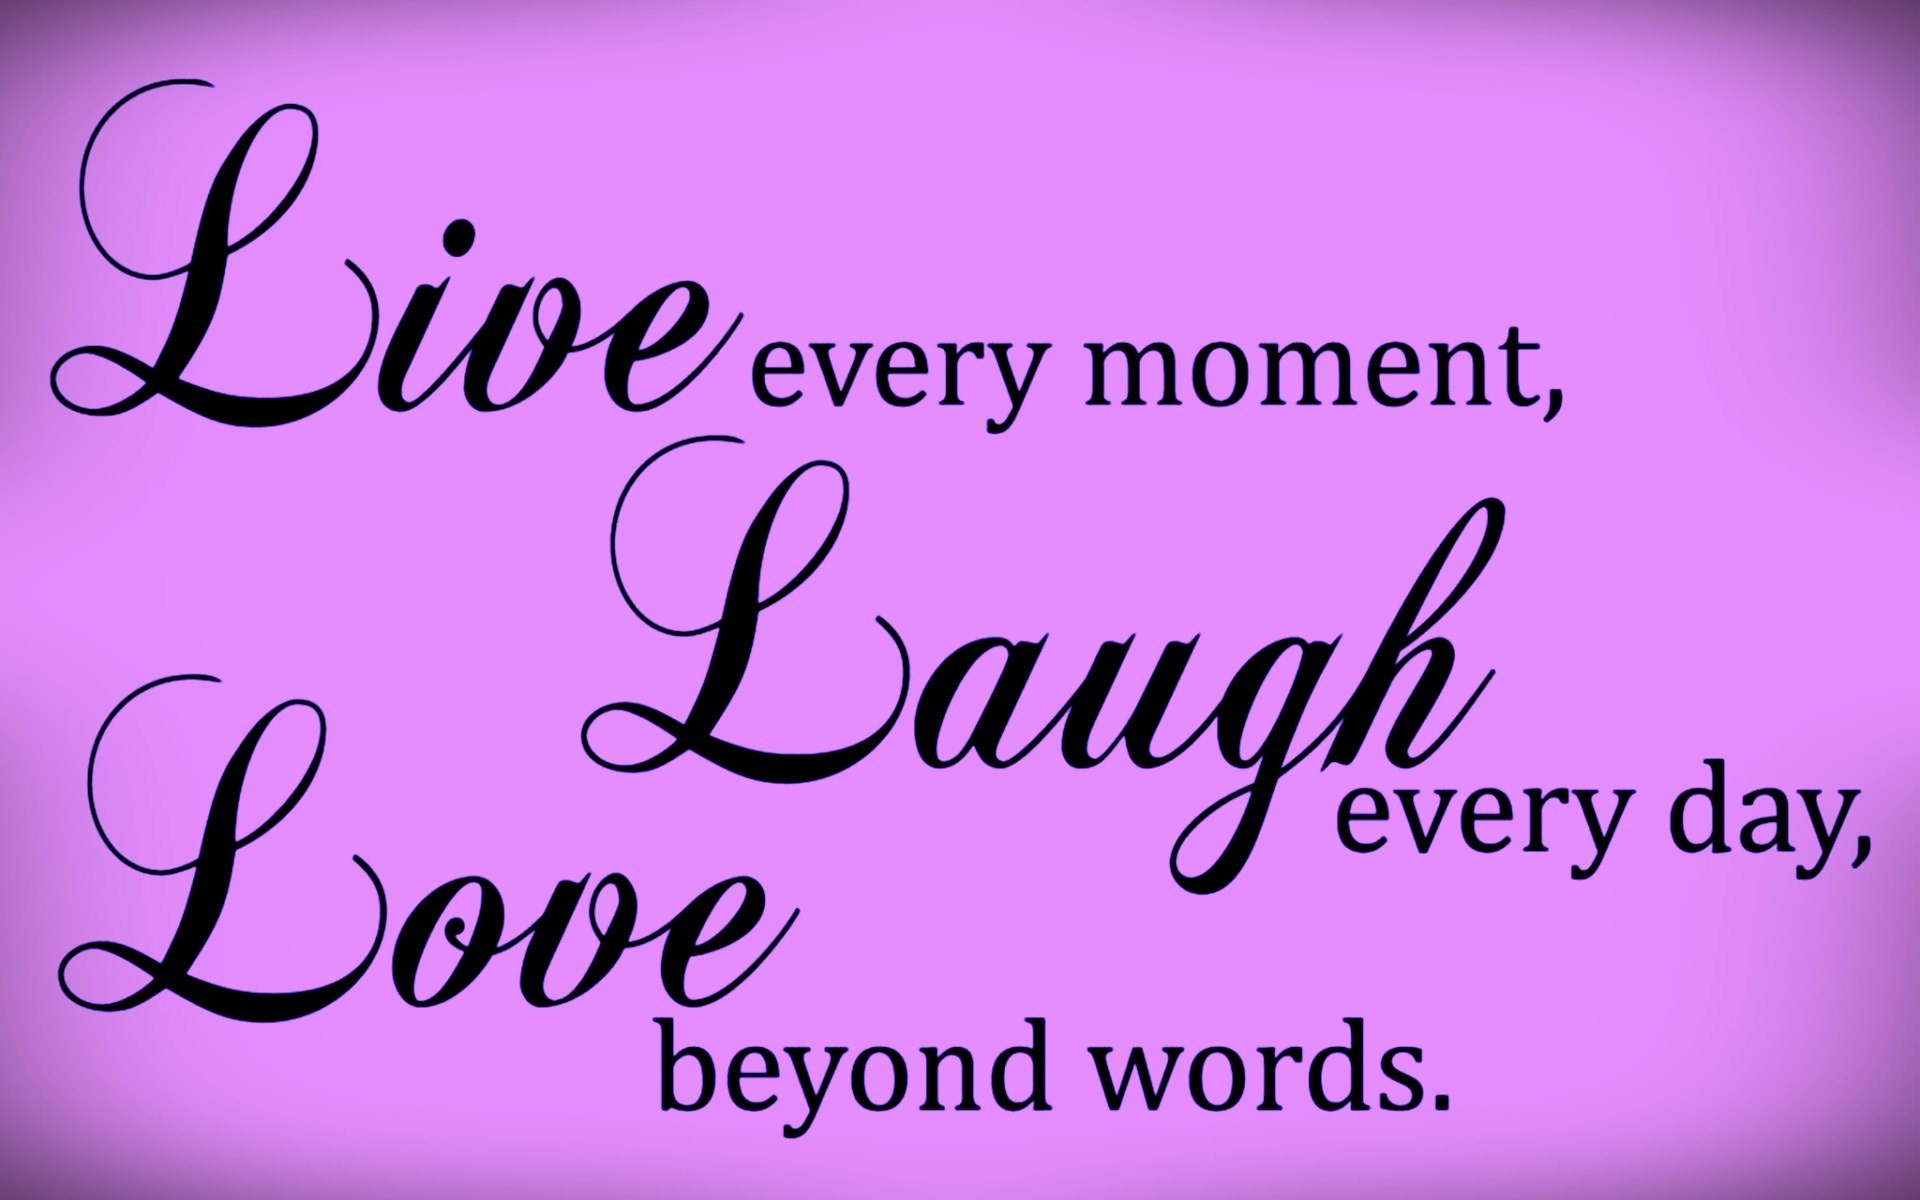 Live Laugh Love Hd Wallpaper : Live Laugh Love Desktop Wallpaper (57+ images)